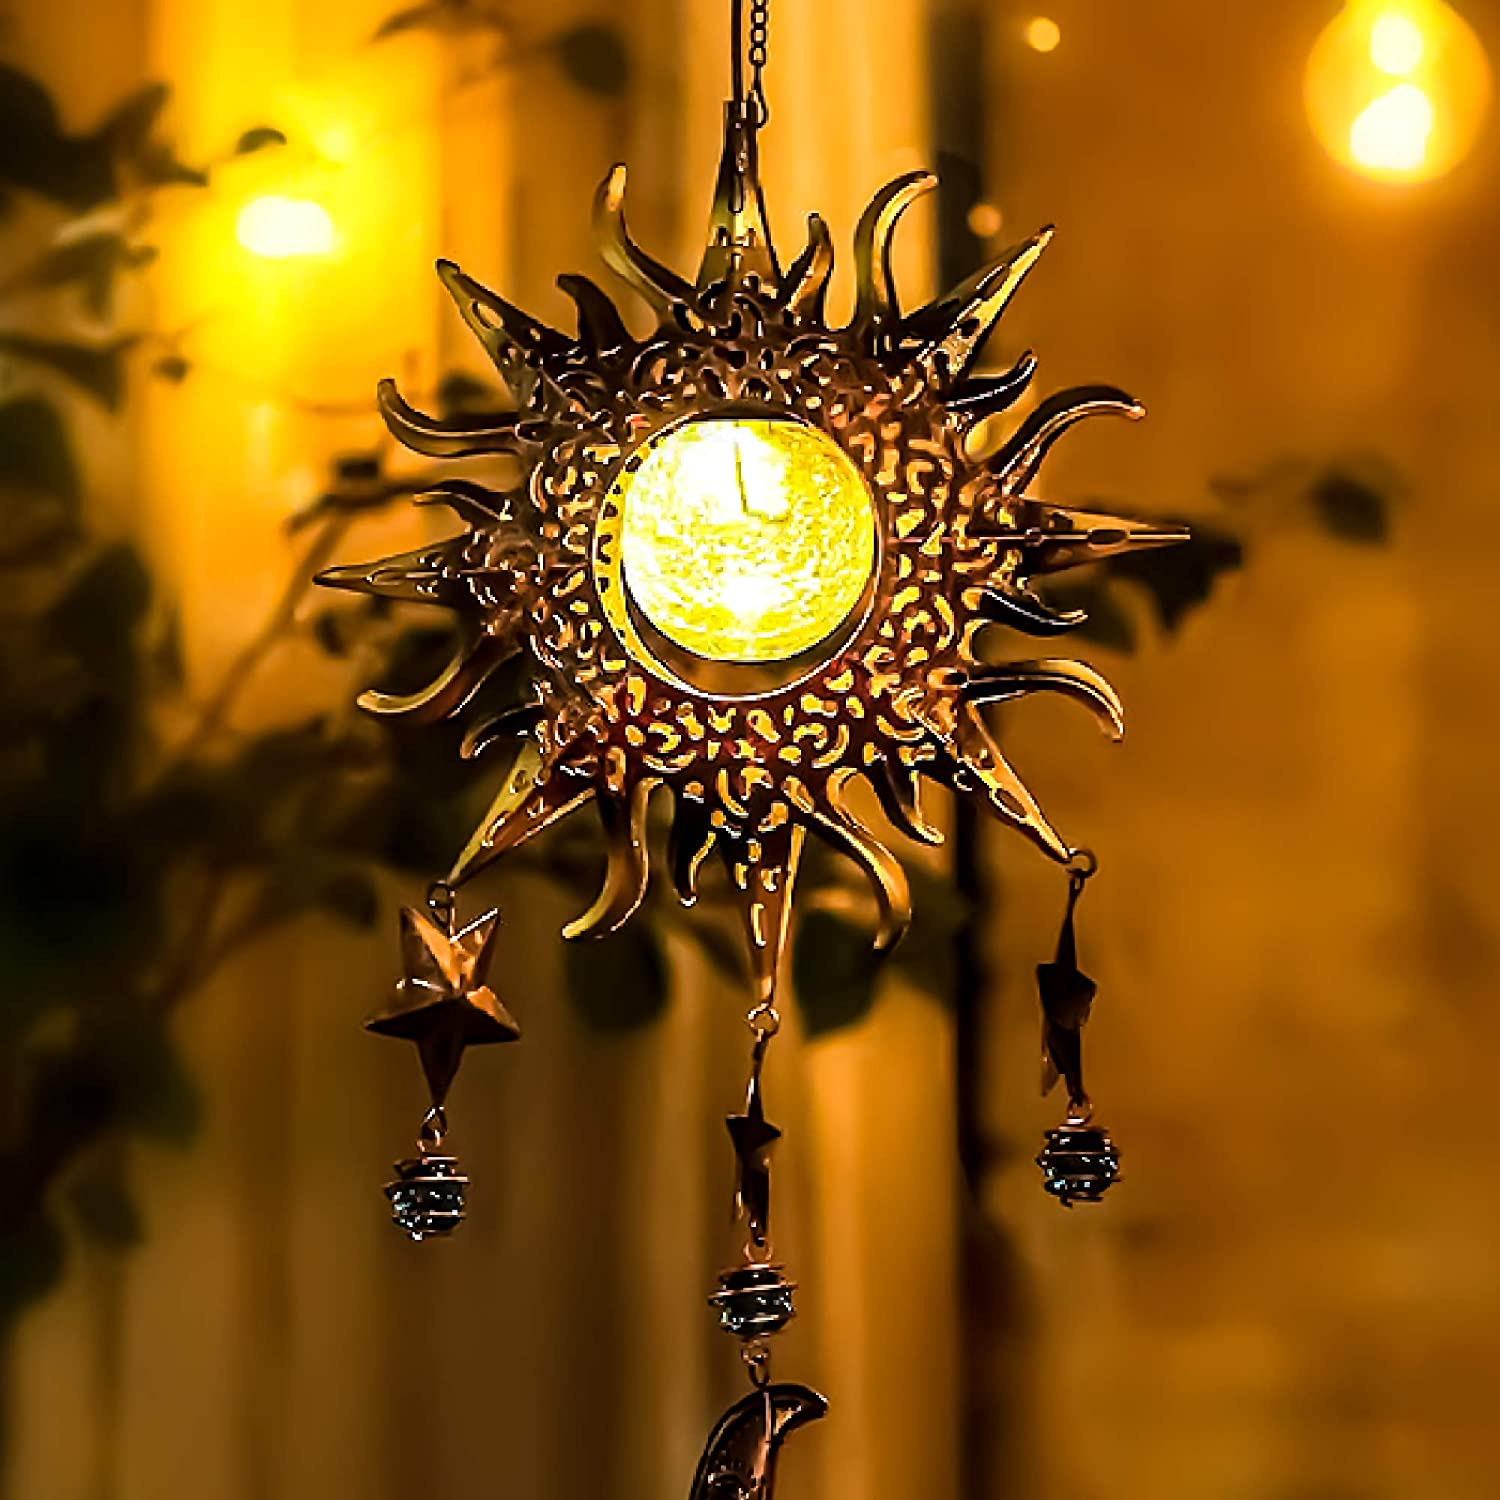 Aodue Wind Chimes, Crackle Glass Solar Lights with Hooks, Hanging Waterproof Solar Powered Windchimes, Sun Moon Stars Combo, Decor for Gifts Home Outside Patio Lawn Garden